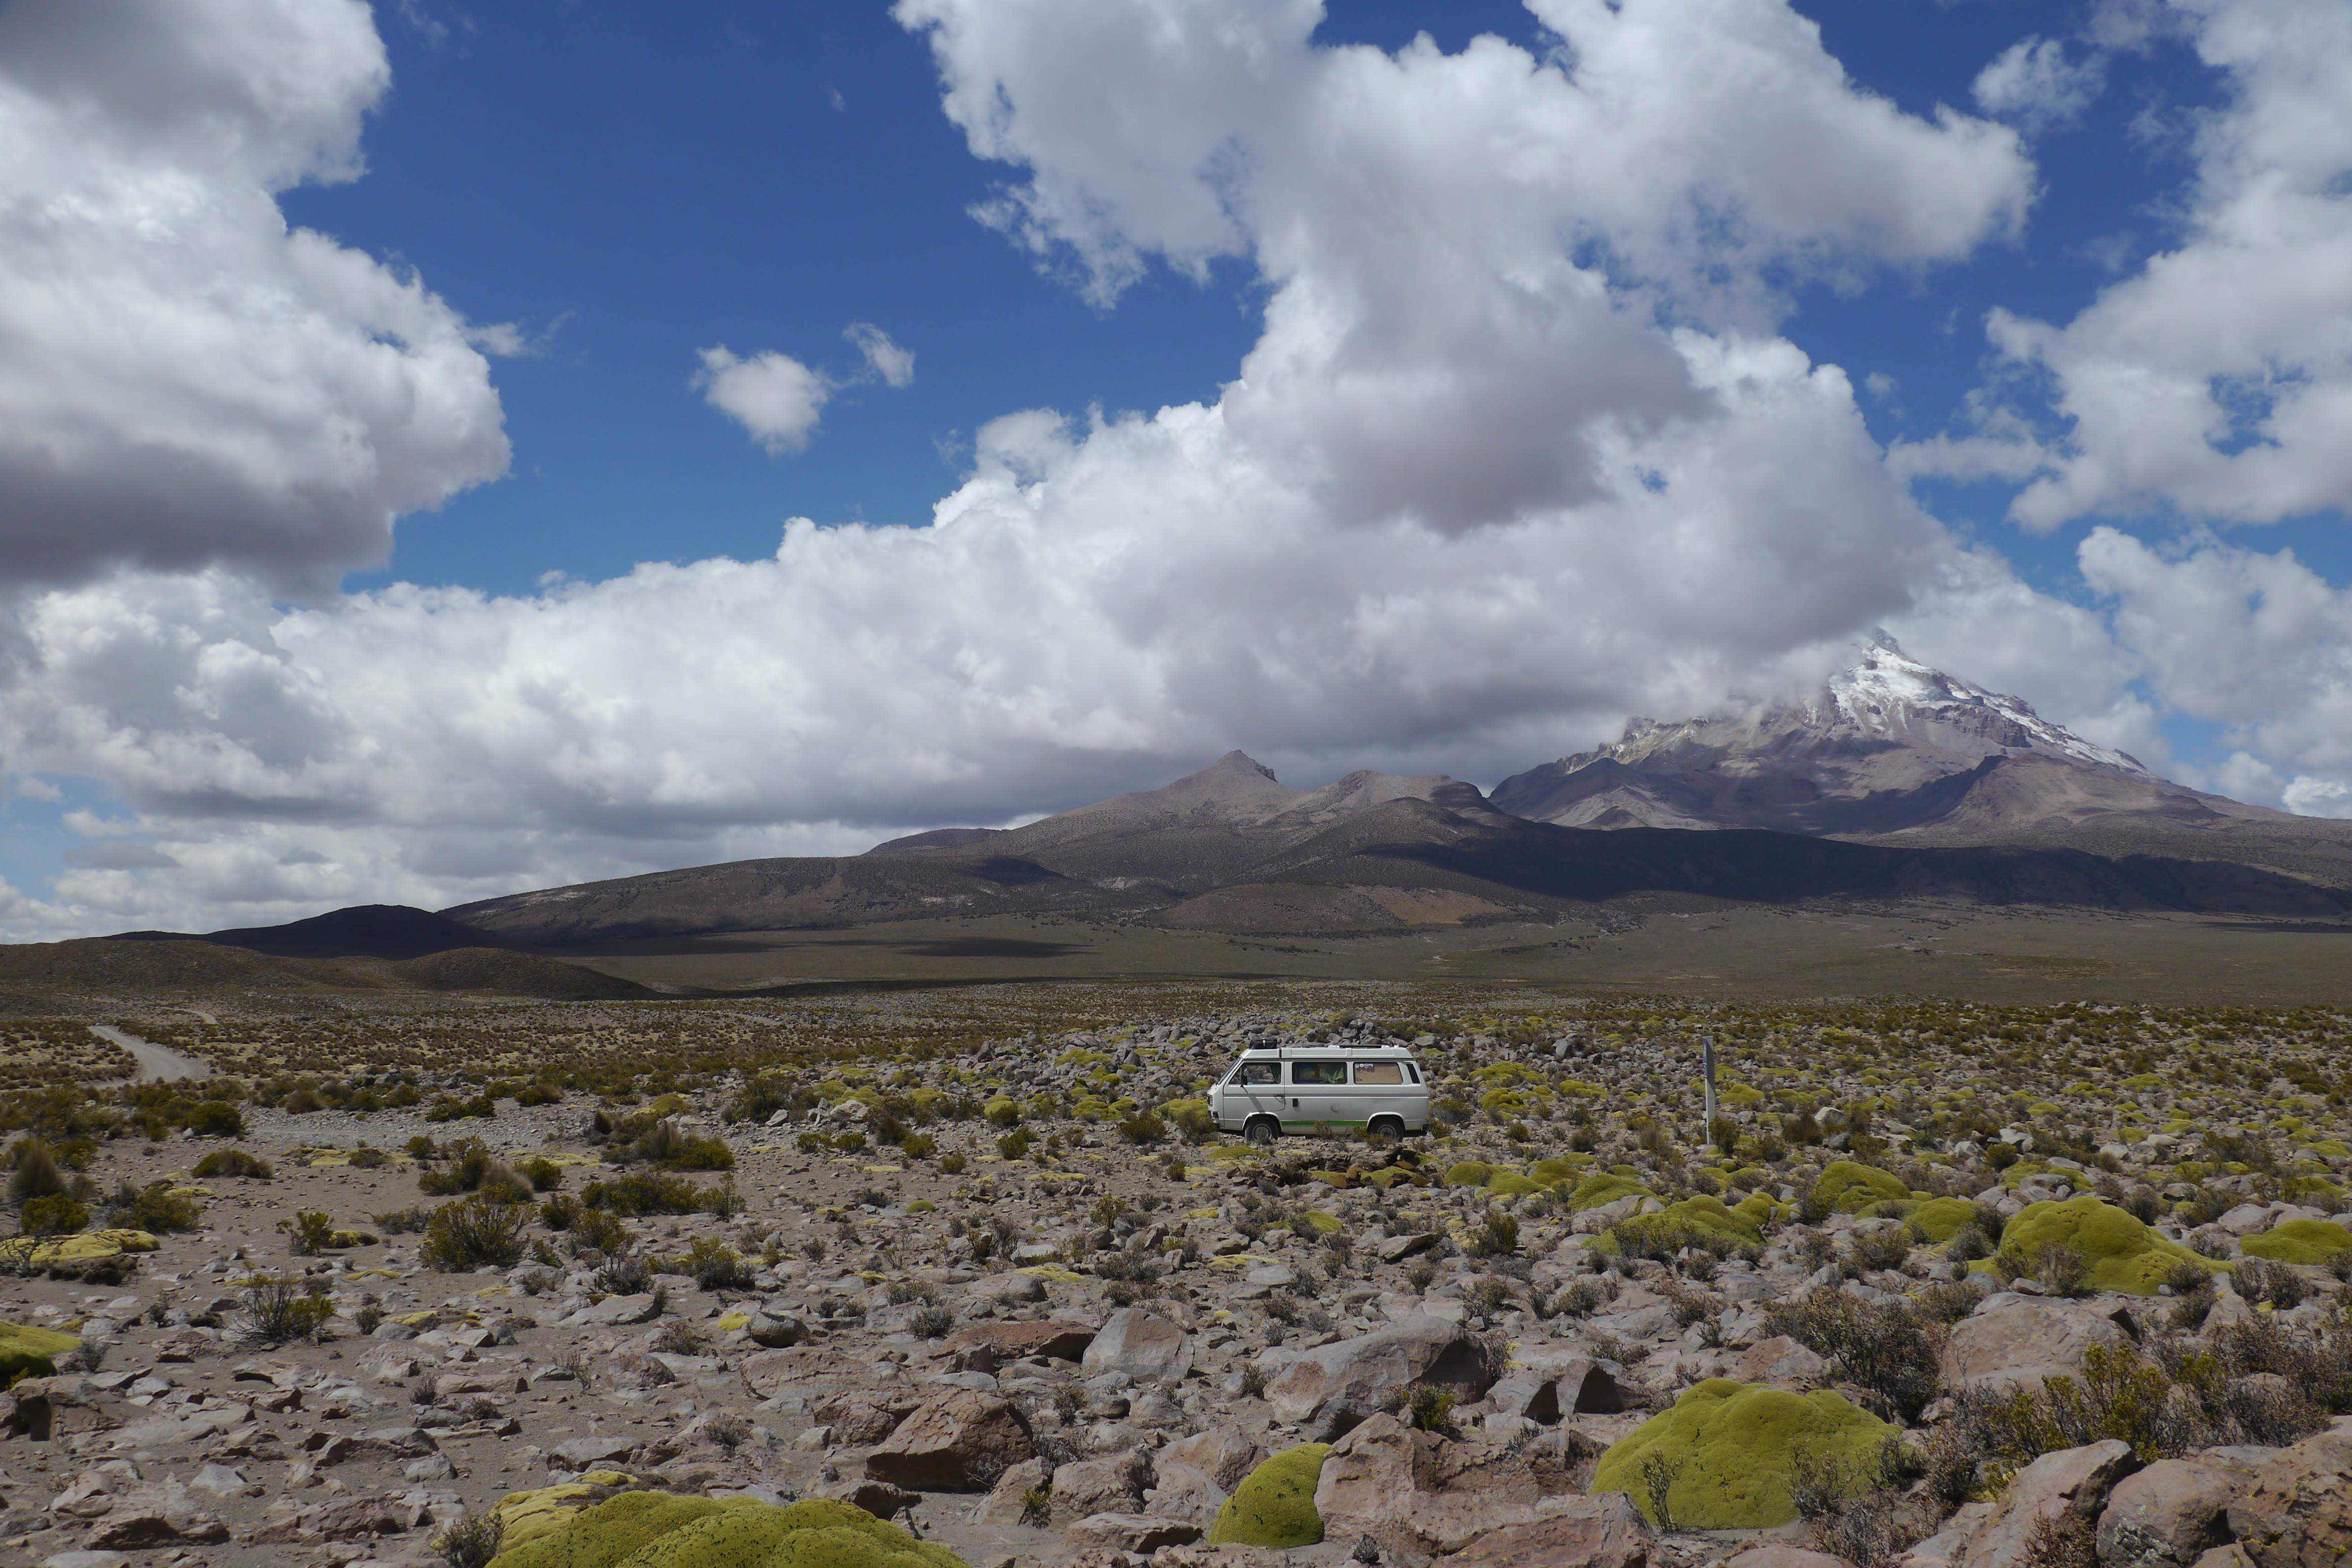 014 1211 - 1411 Sajama Nationalpark 111jpeg